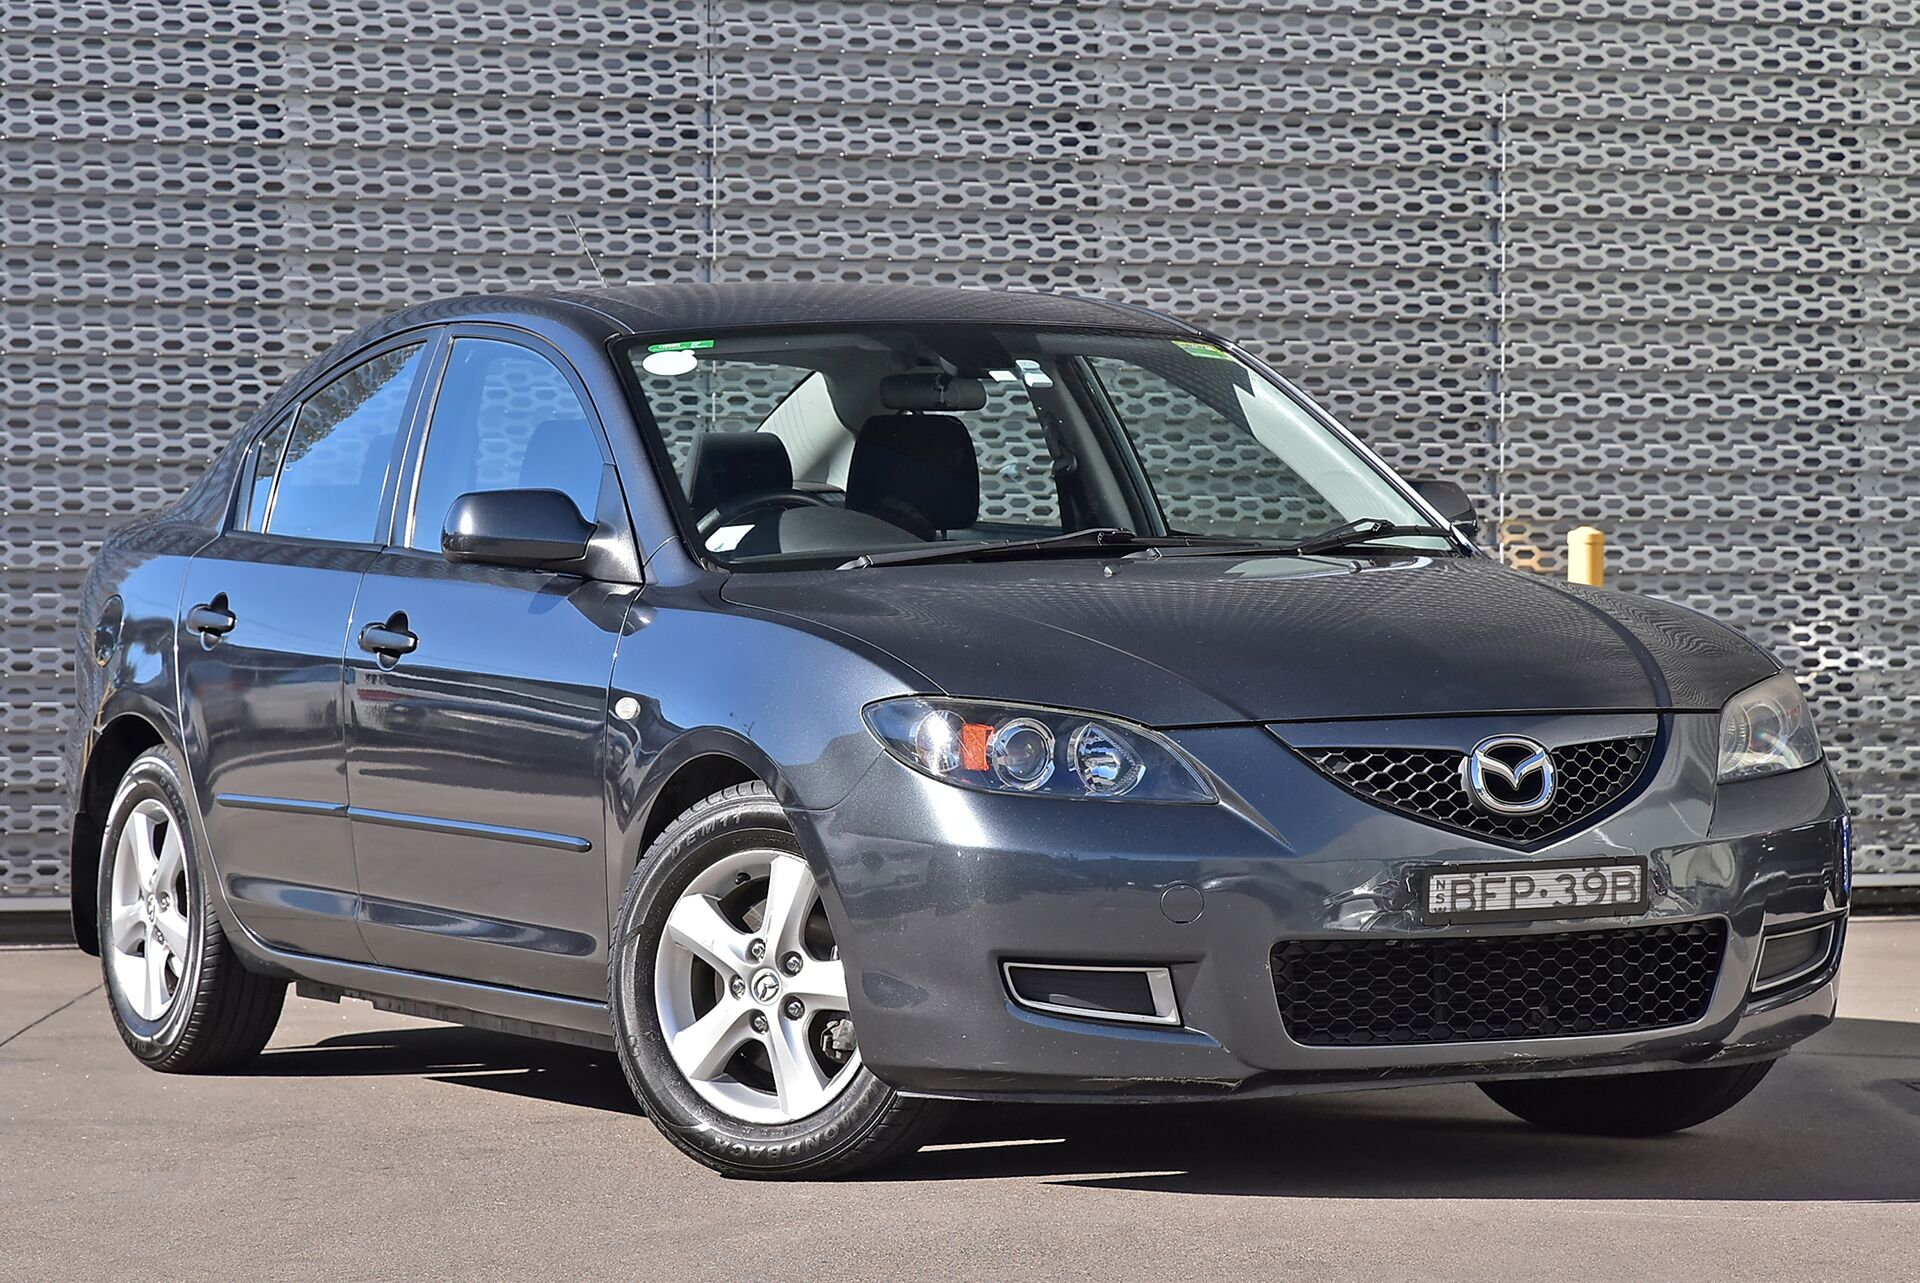 Picture of Jaime's 2008 Mazda 3